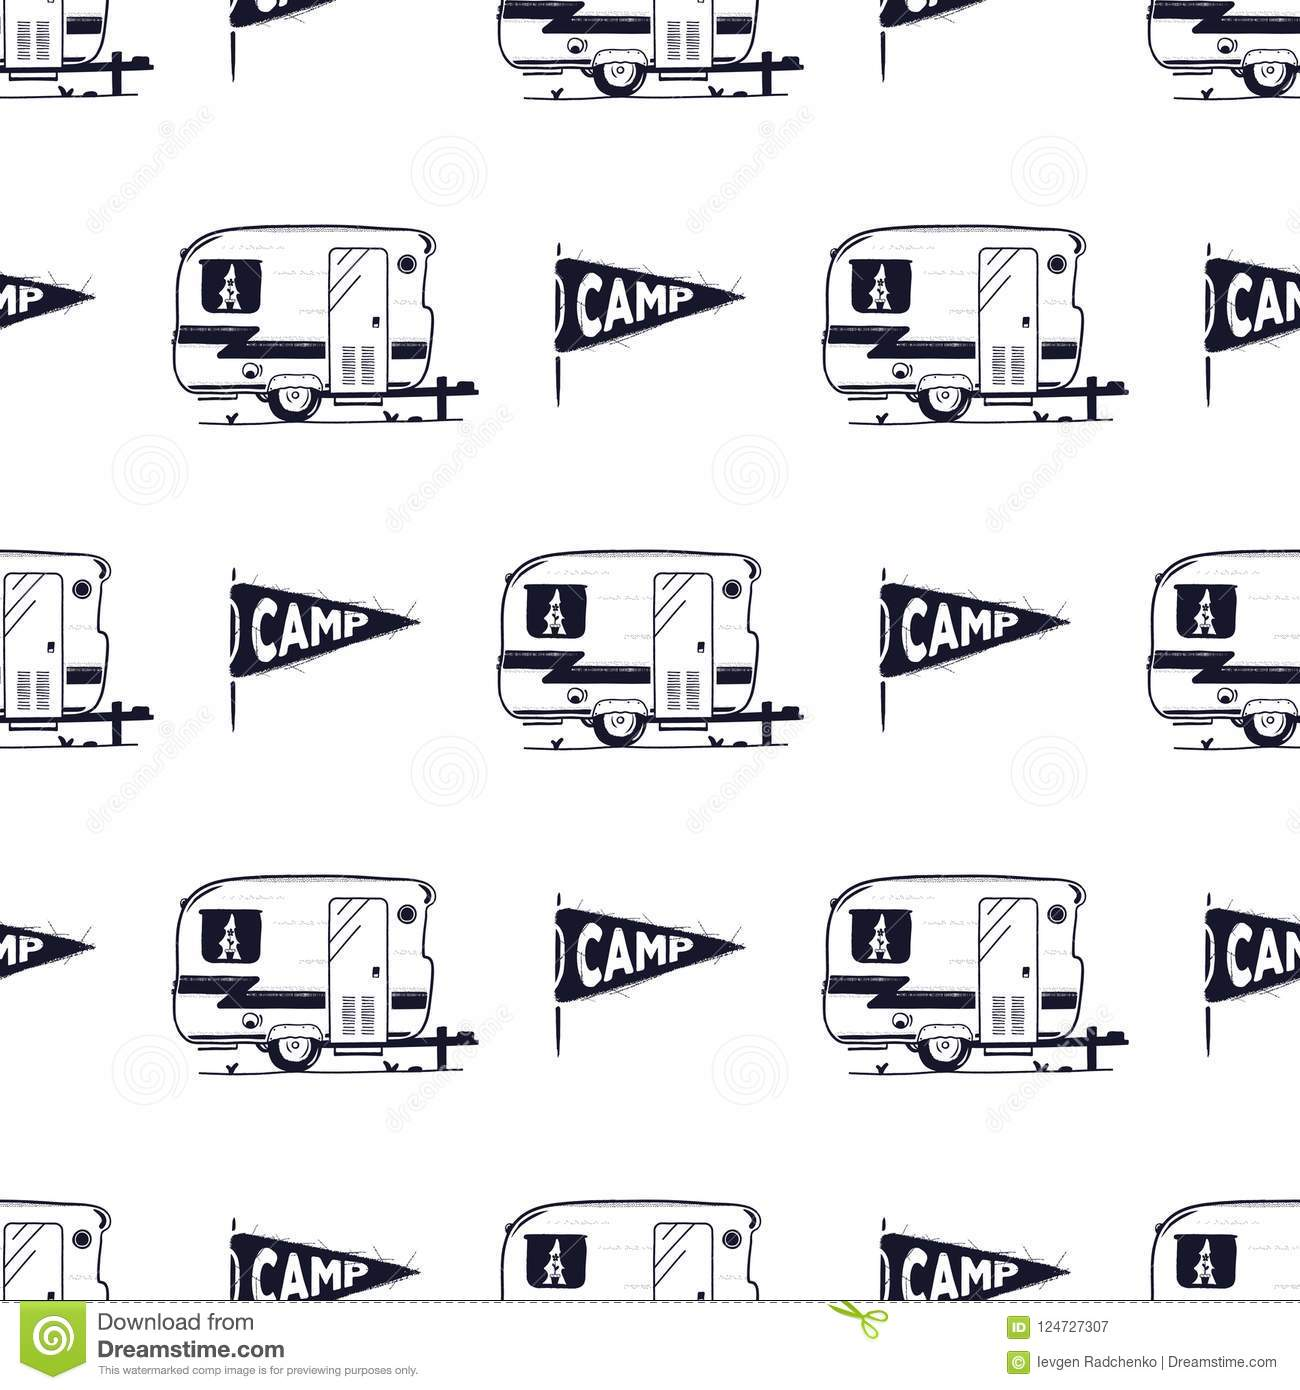 Camping Rv Seamless Pattern With Camp Pennant Symbol Retro